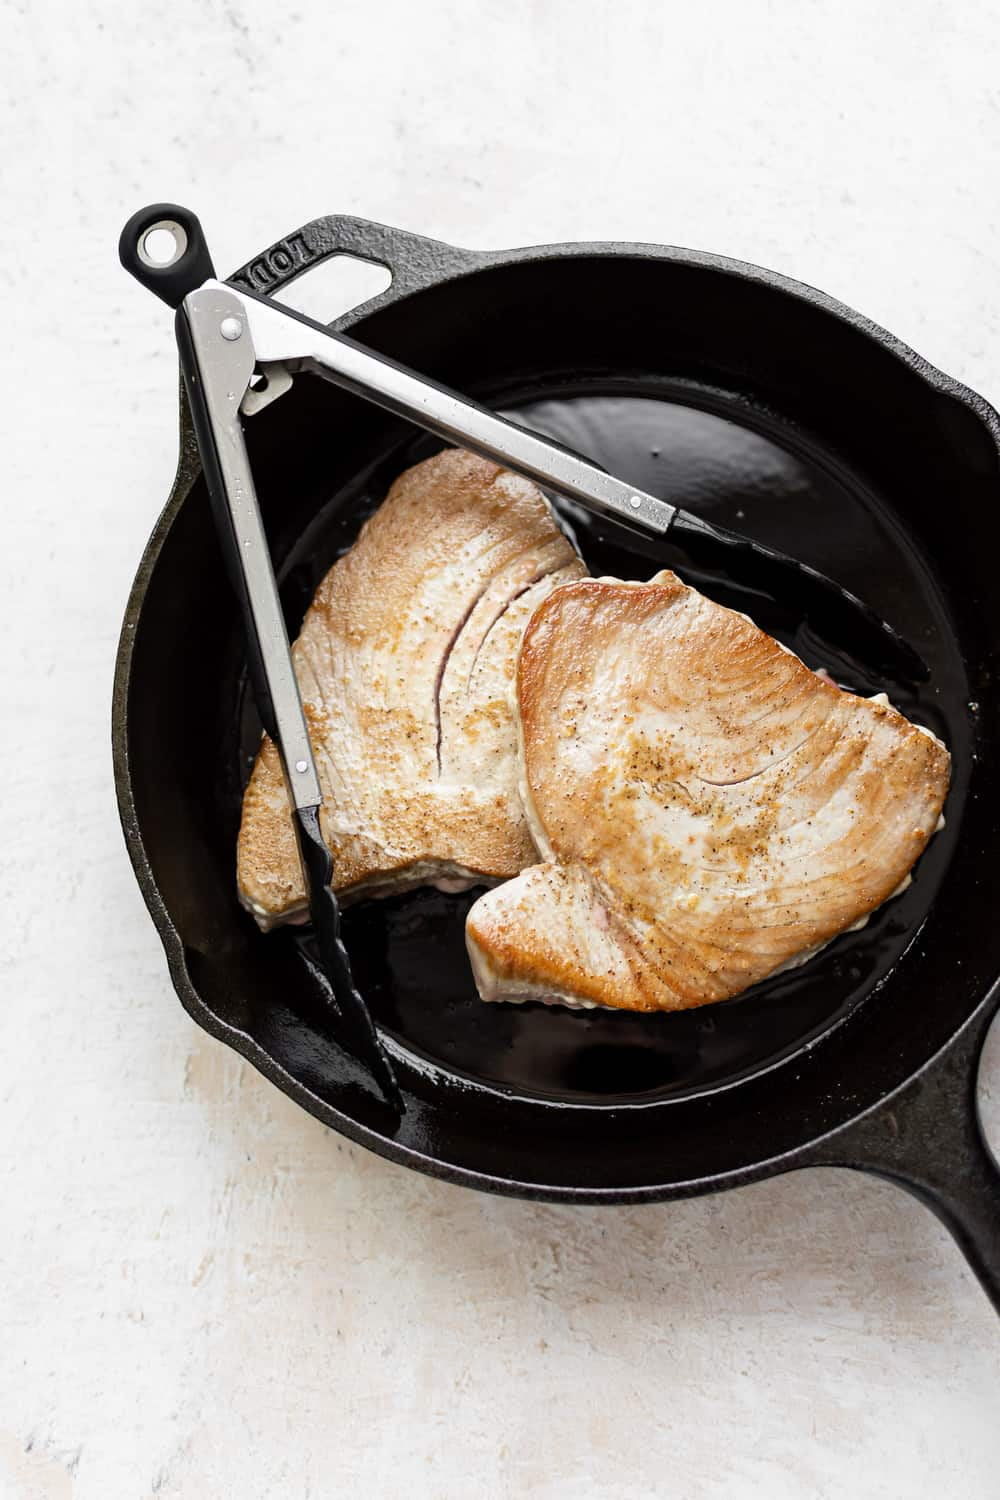 ahi tuna in a skillet